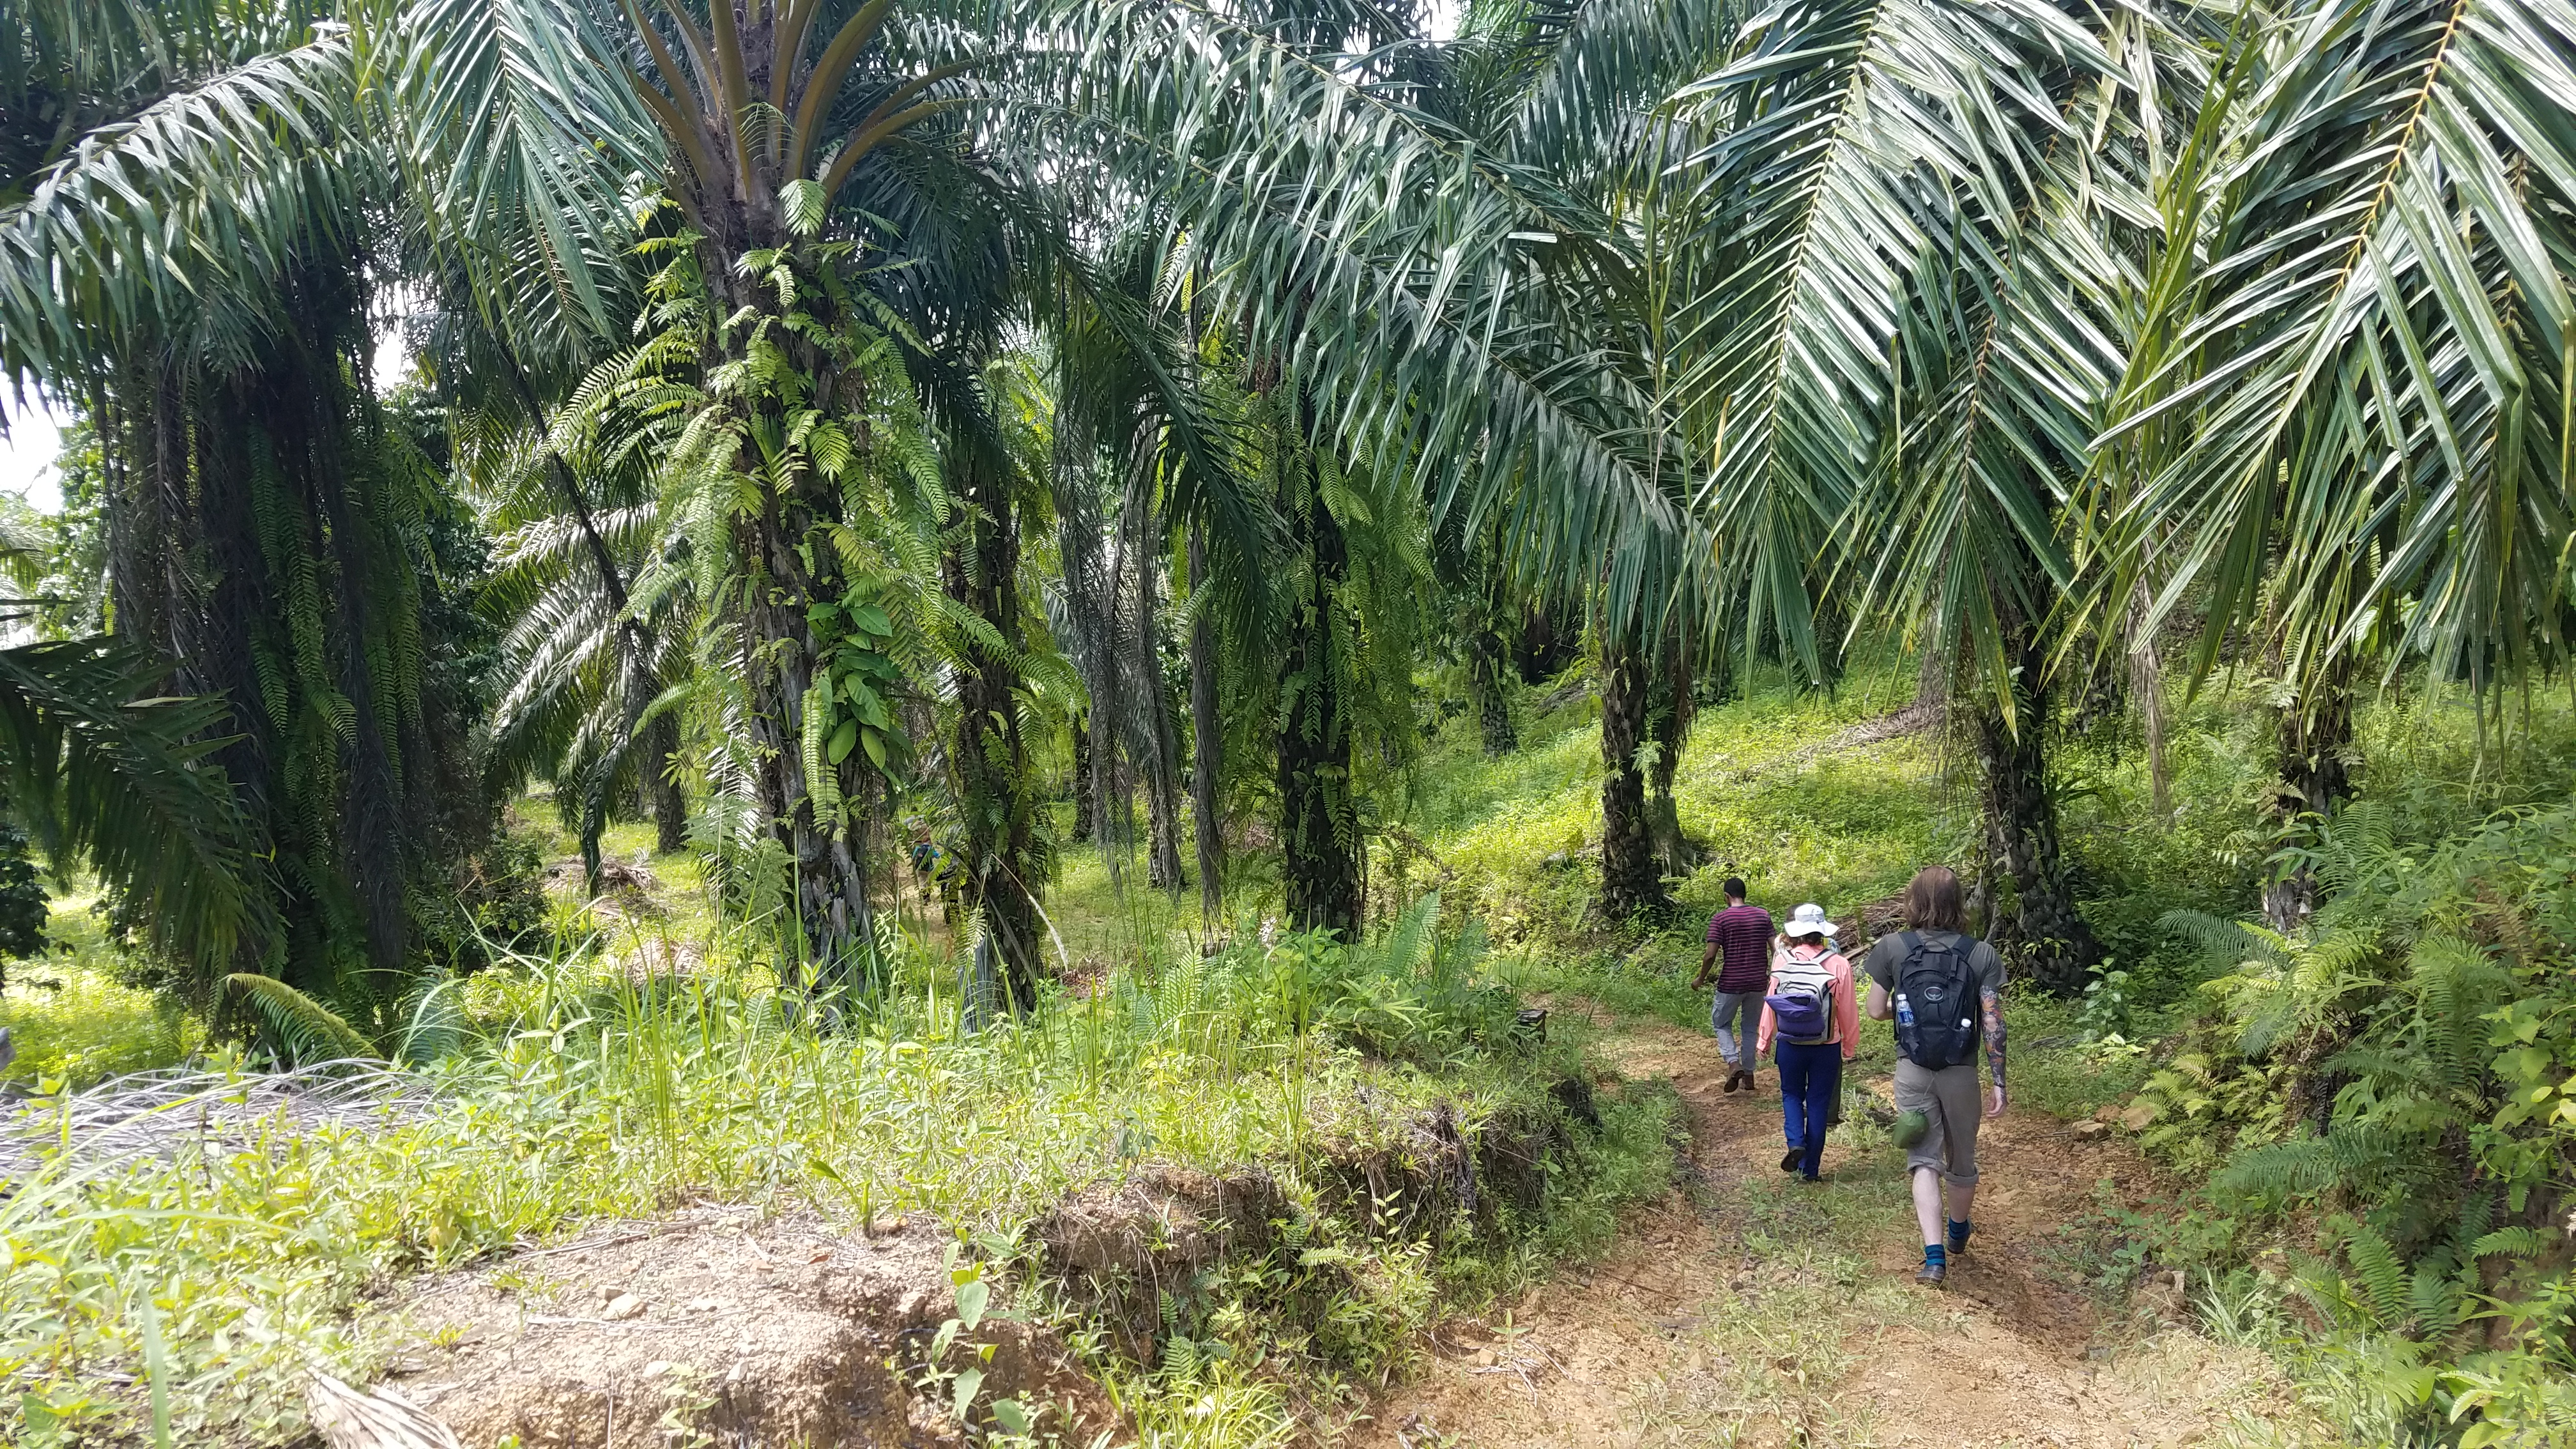 students hiking in tropical forest